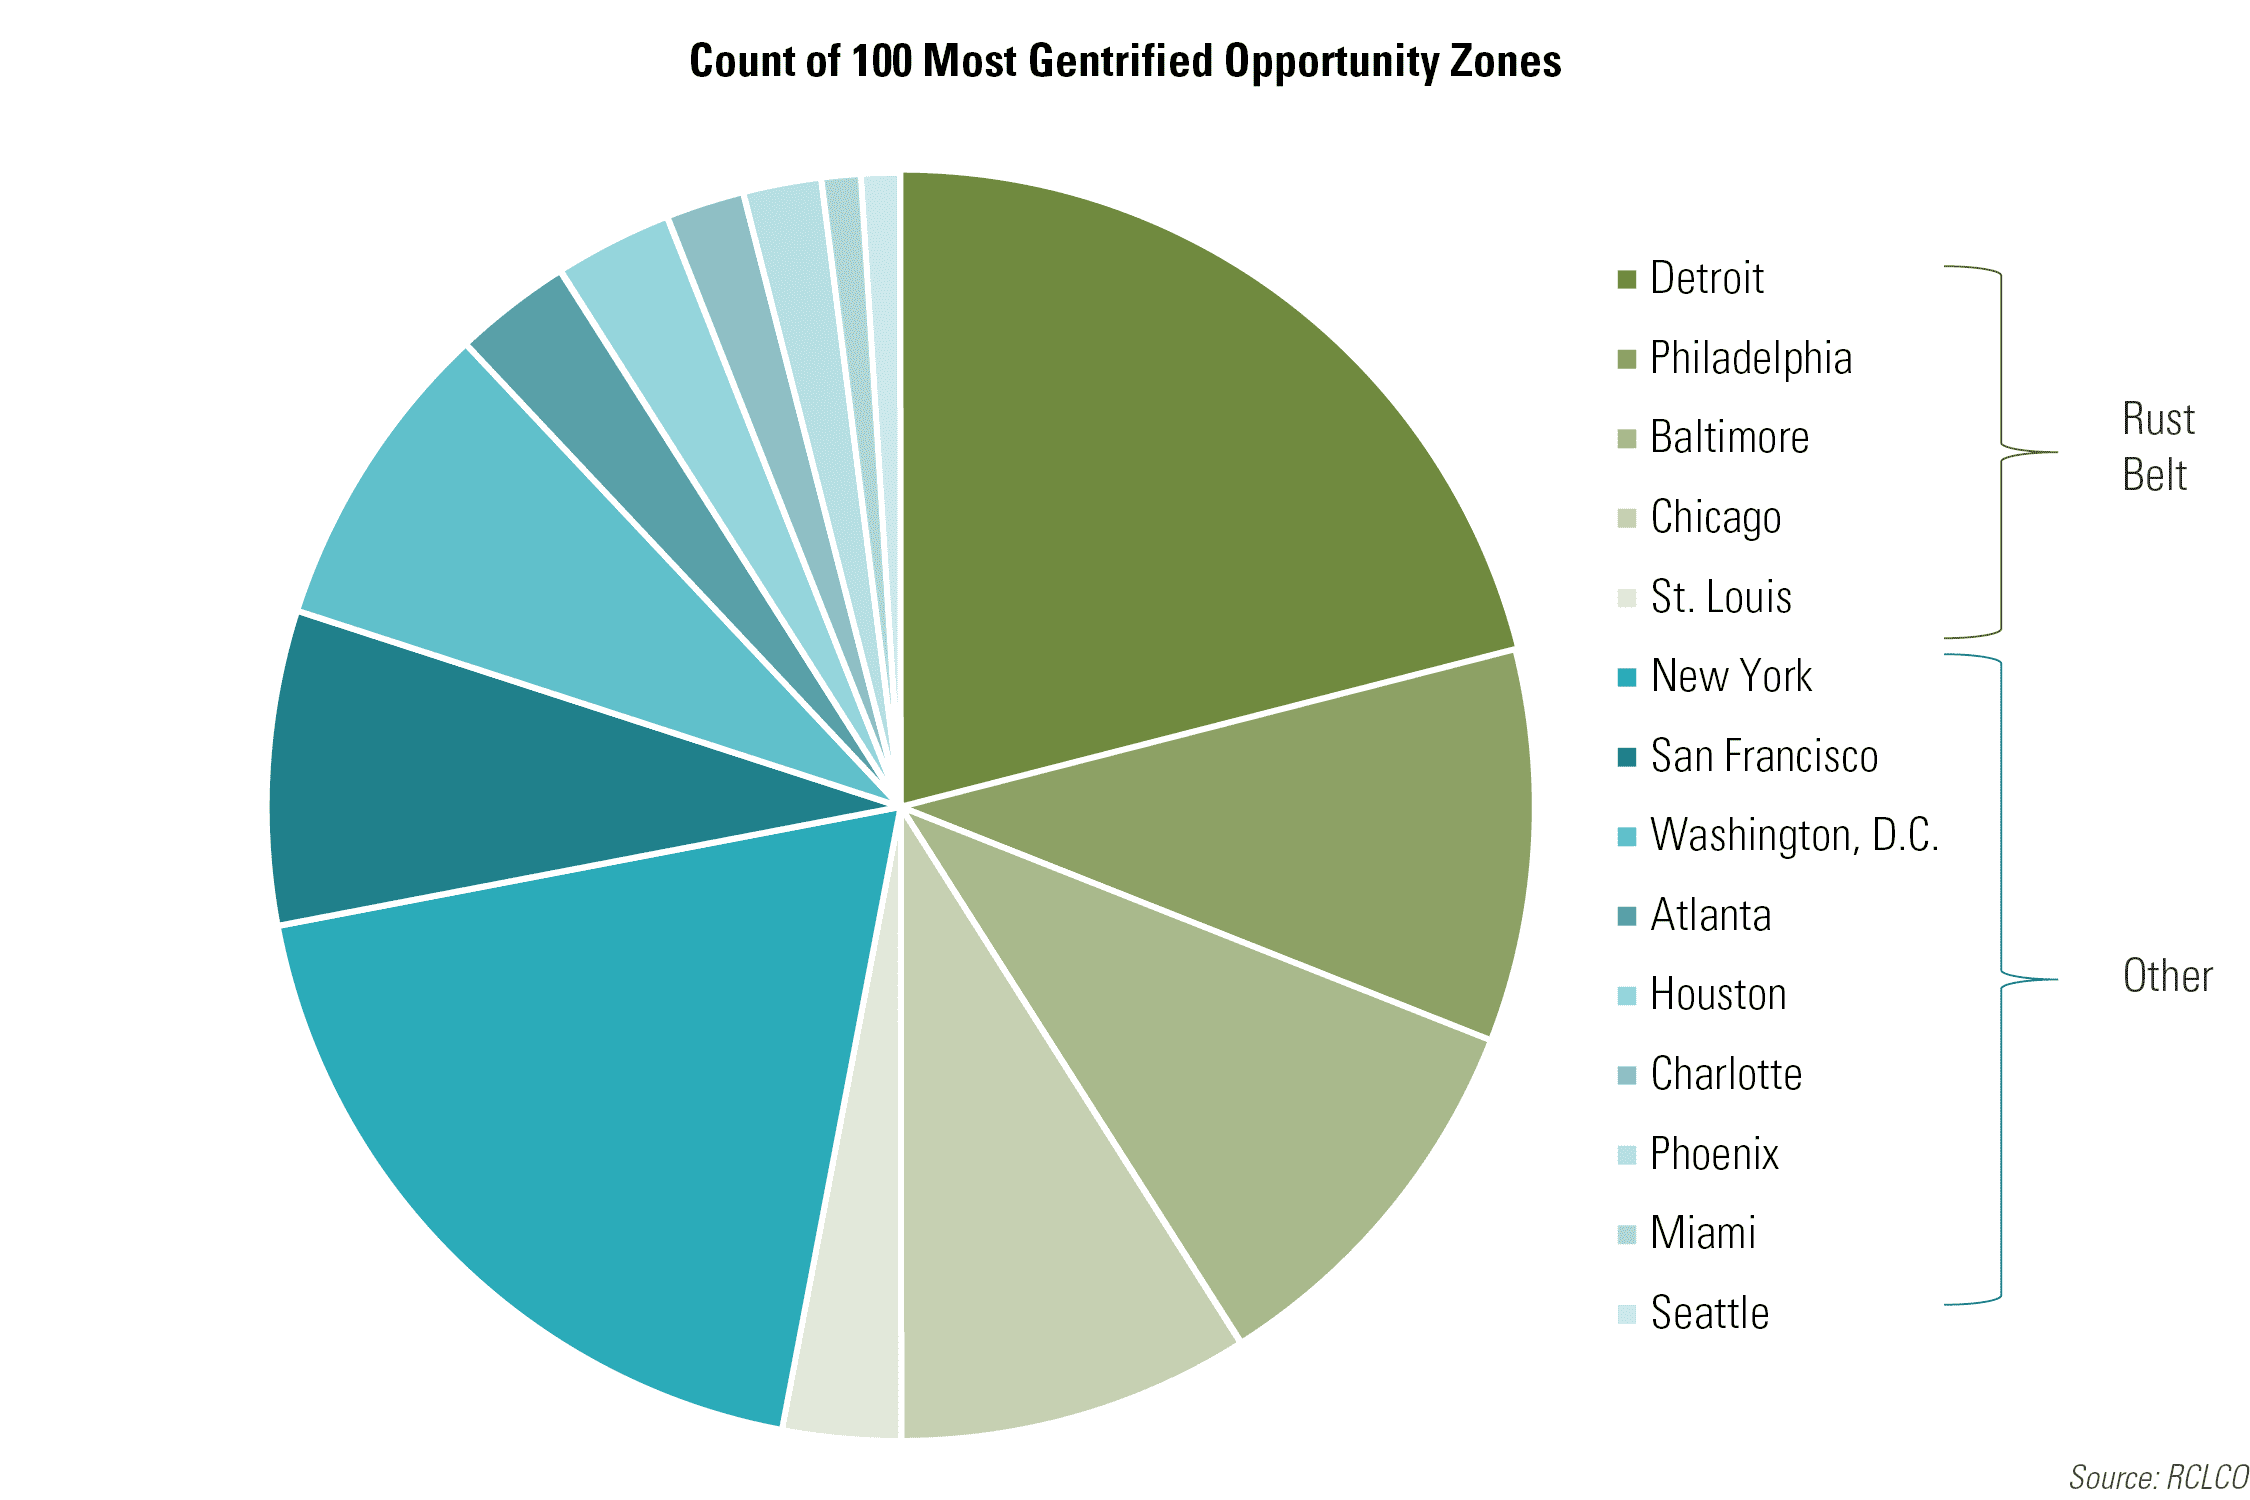 Count of 100 Most Gentrified Opportunity Zones